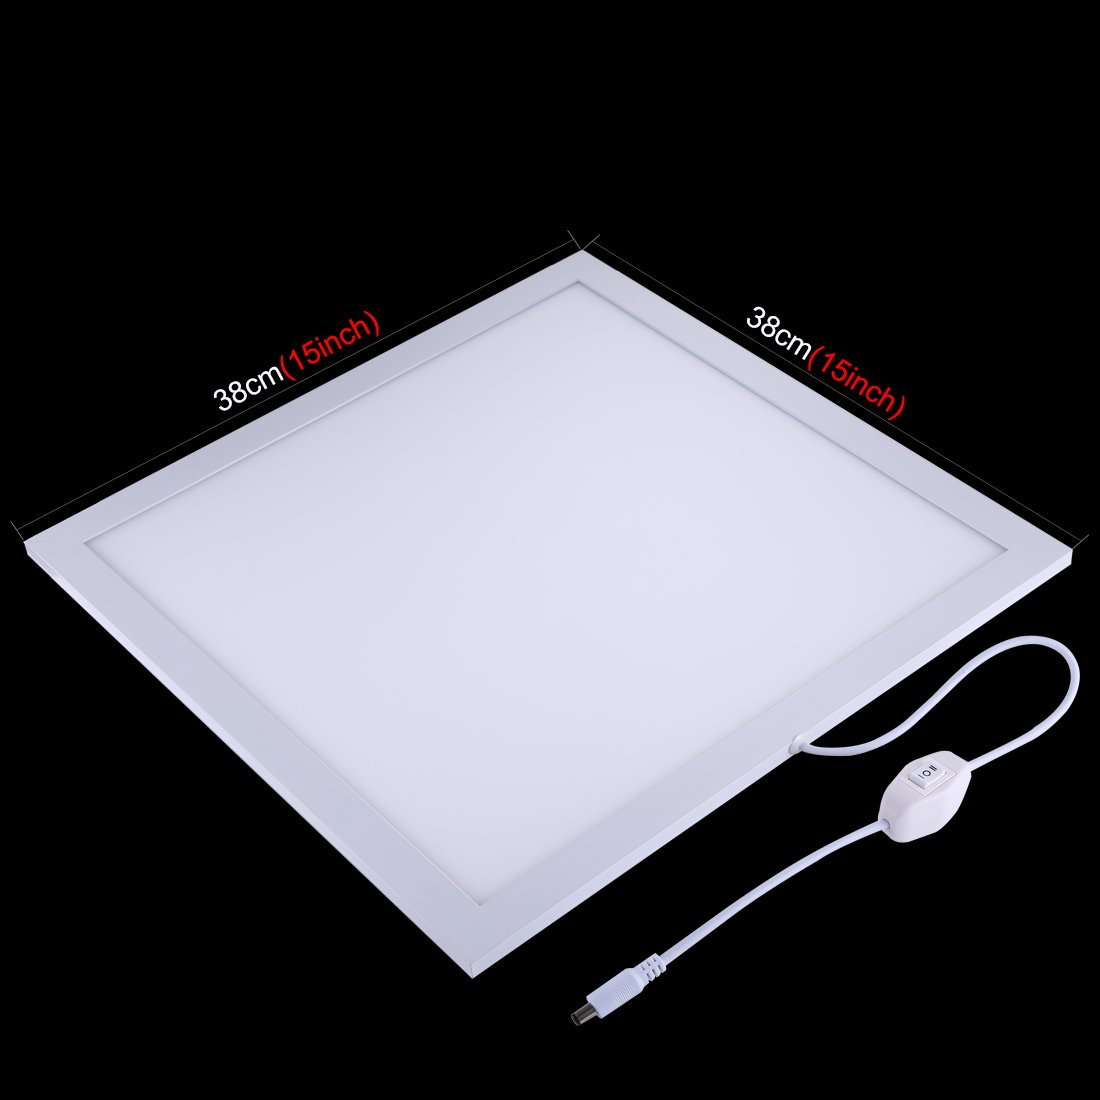 PULUZ 38cm X 38cm / 15in X 15in Dimmable LED Photography Photo Video Light Panel Shadowless Softbox Bottom Light Panel Brightness Adjustable